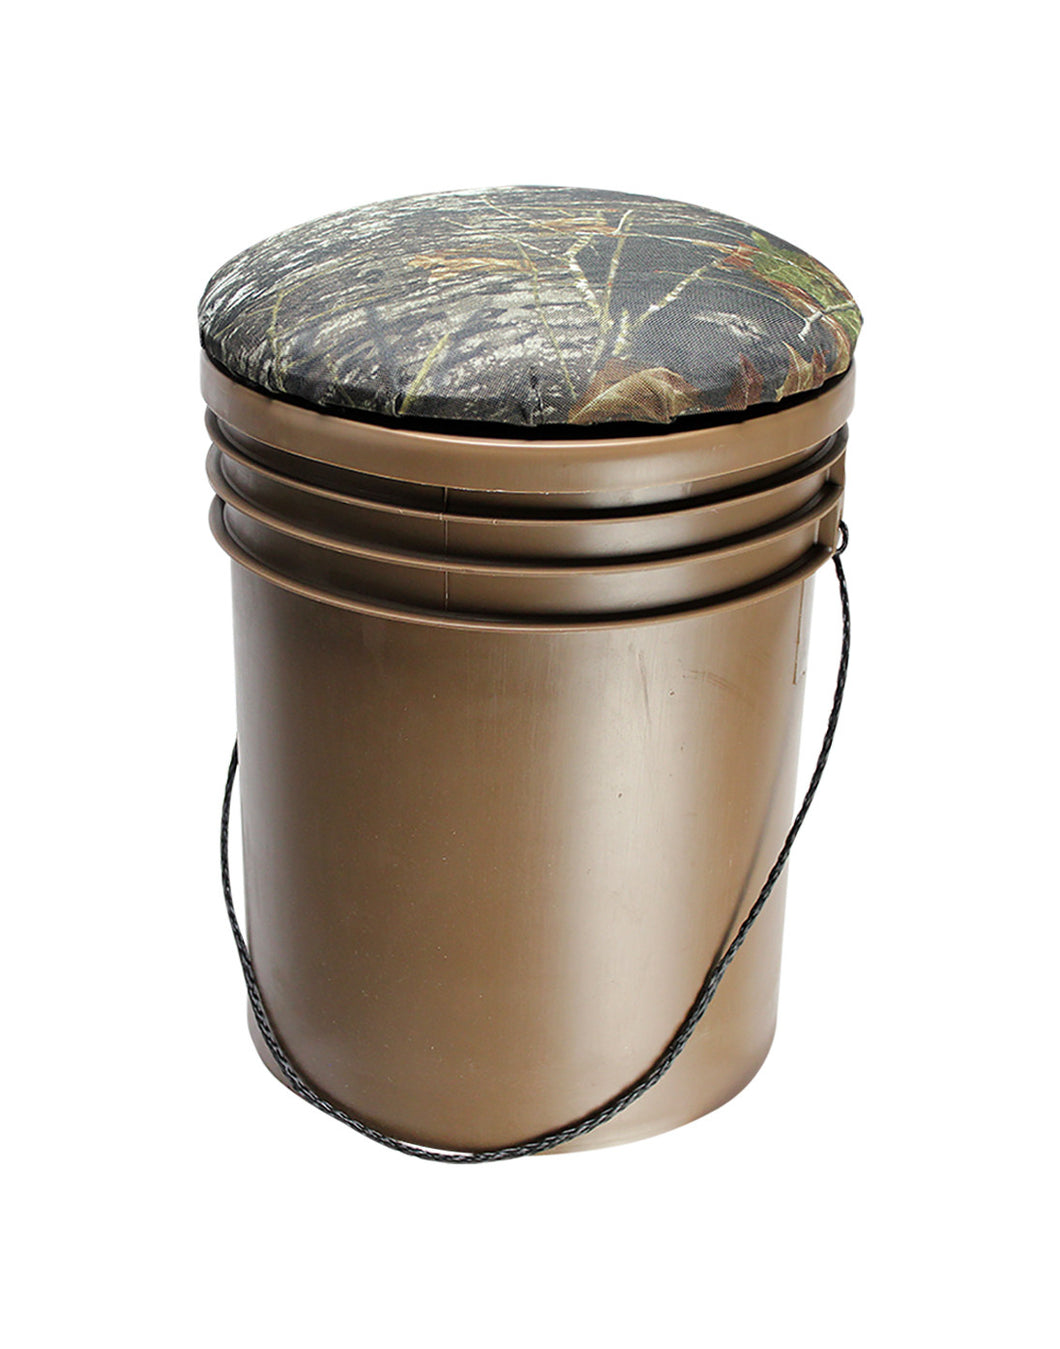 5615-246 Wise Outdoors Dove Bucket w/ Stealth Swivel Seat